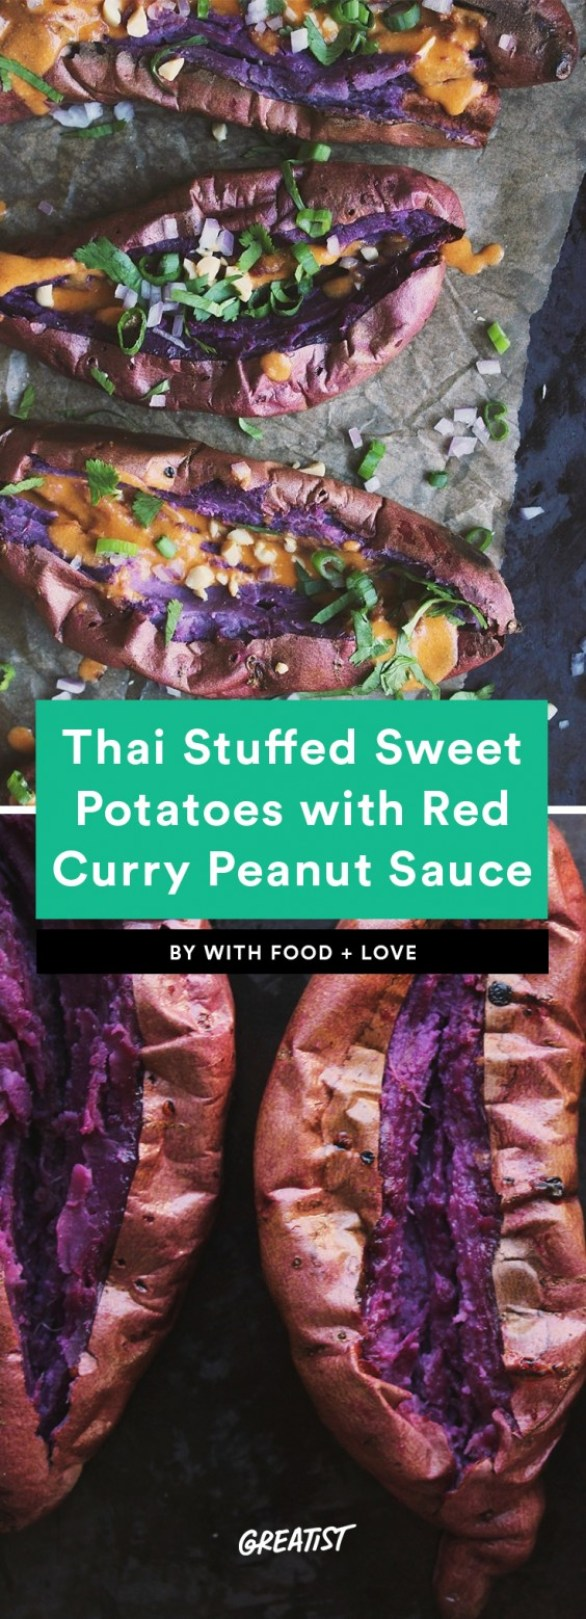 Thai Stuffed Sweet Potatoes with Red Curry Peanut Sauce